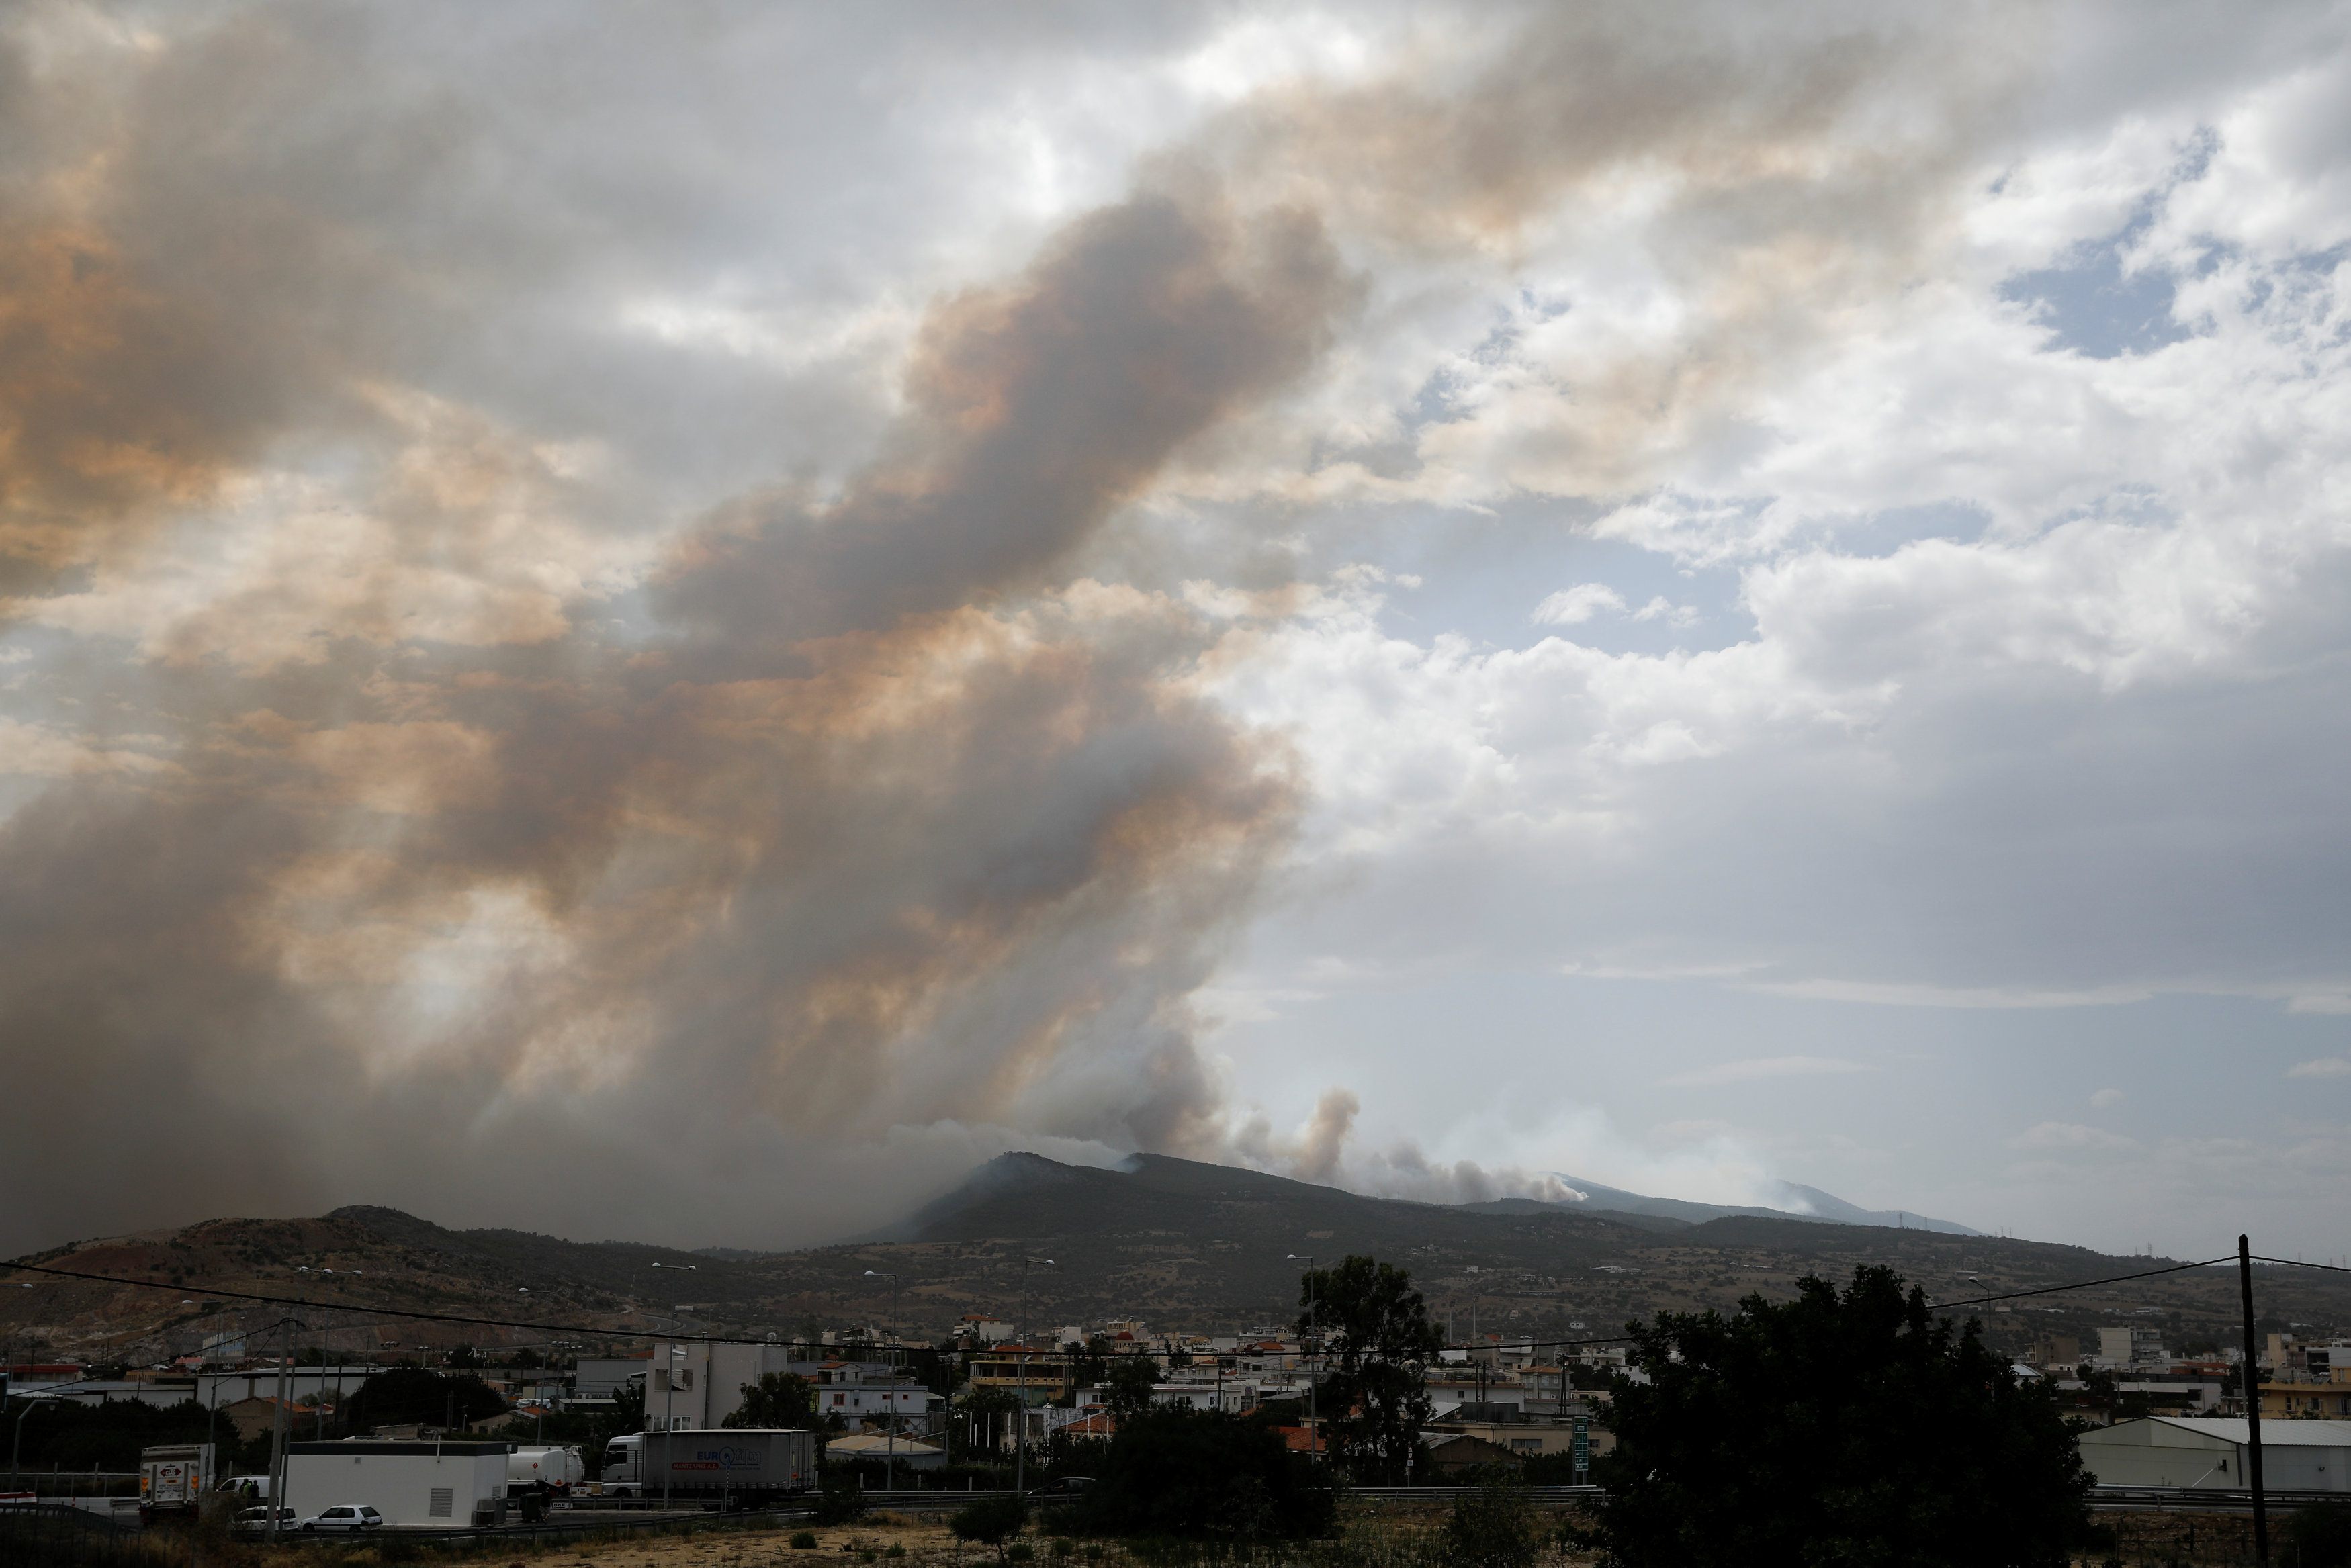 A village is seen amid smoke as a wildfire burns in Kineta